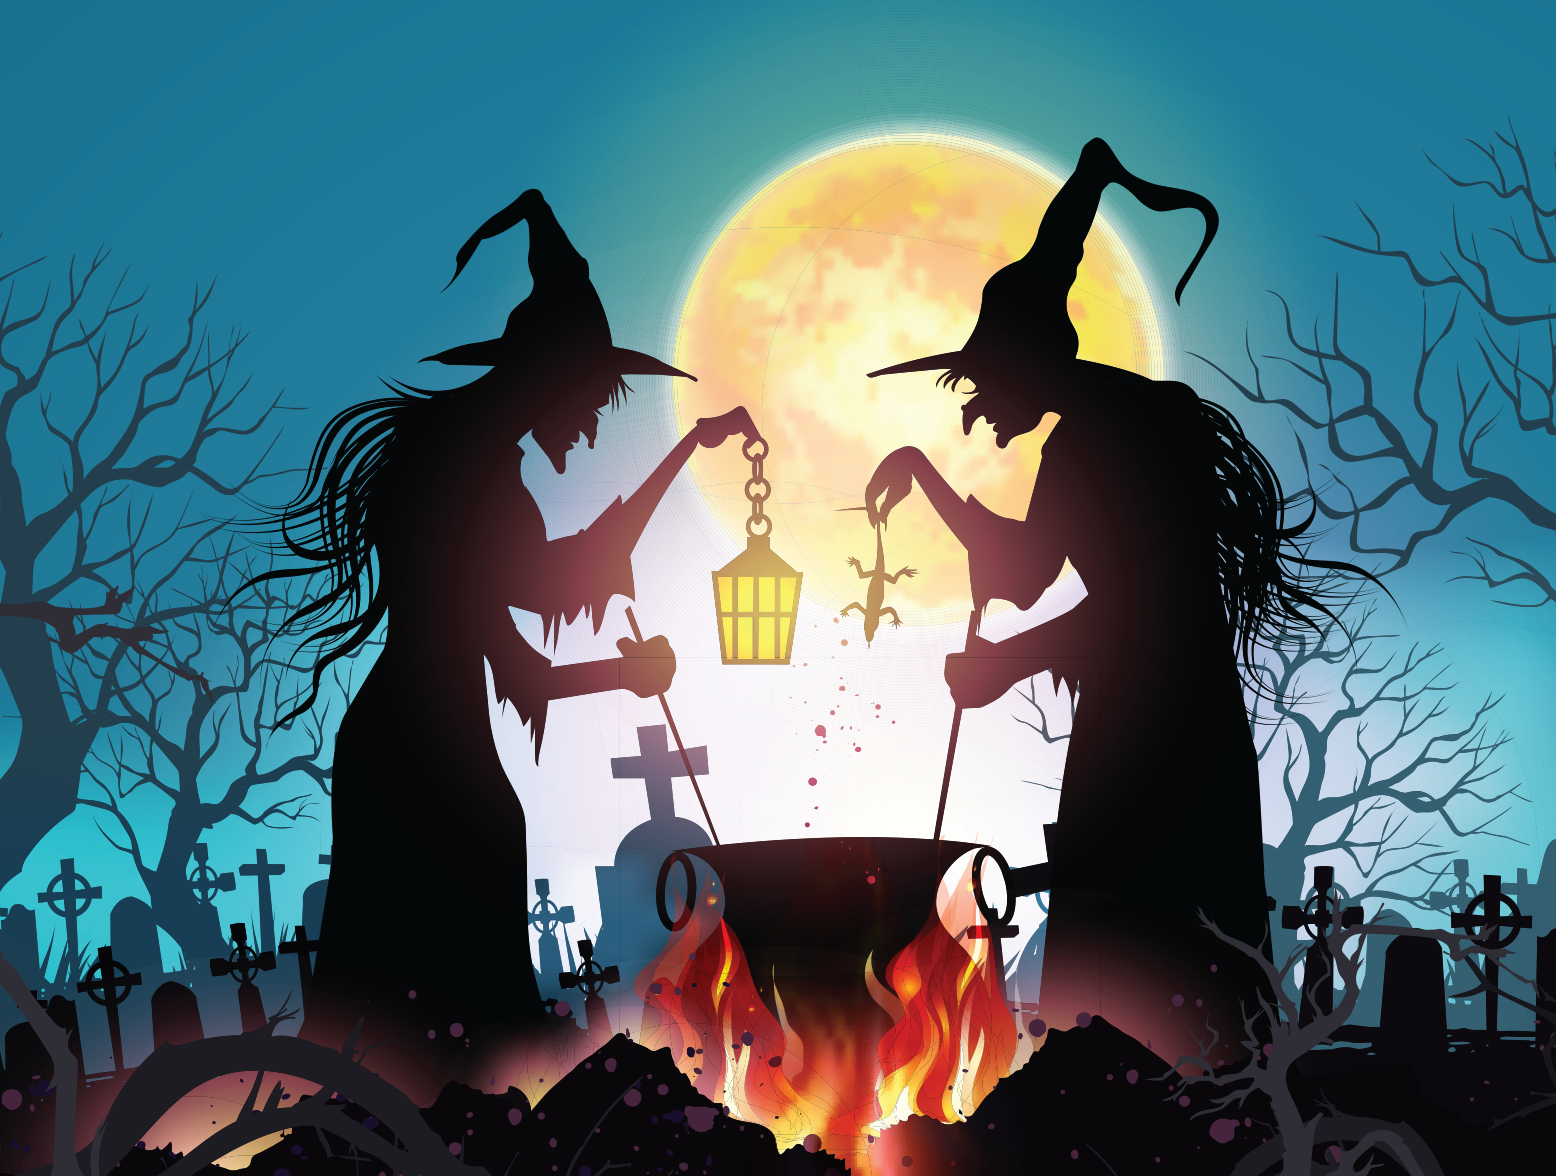 QUIZ: Which Witch Are You? - ROCK 92.9 Rocks